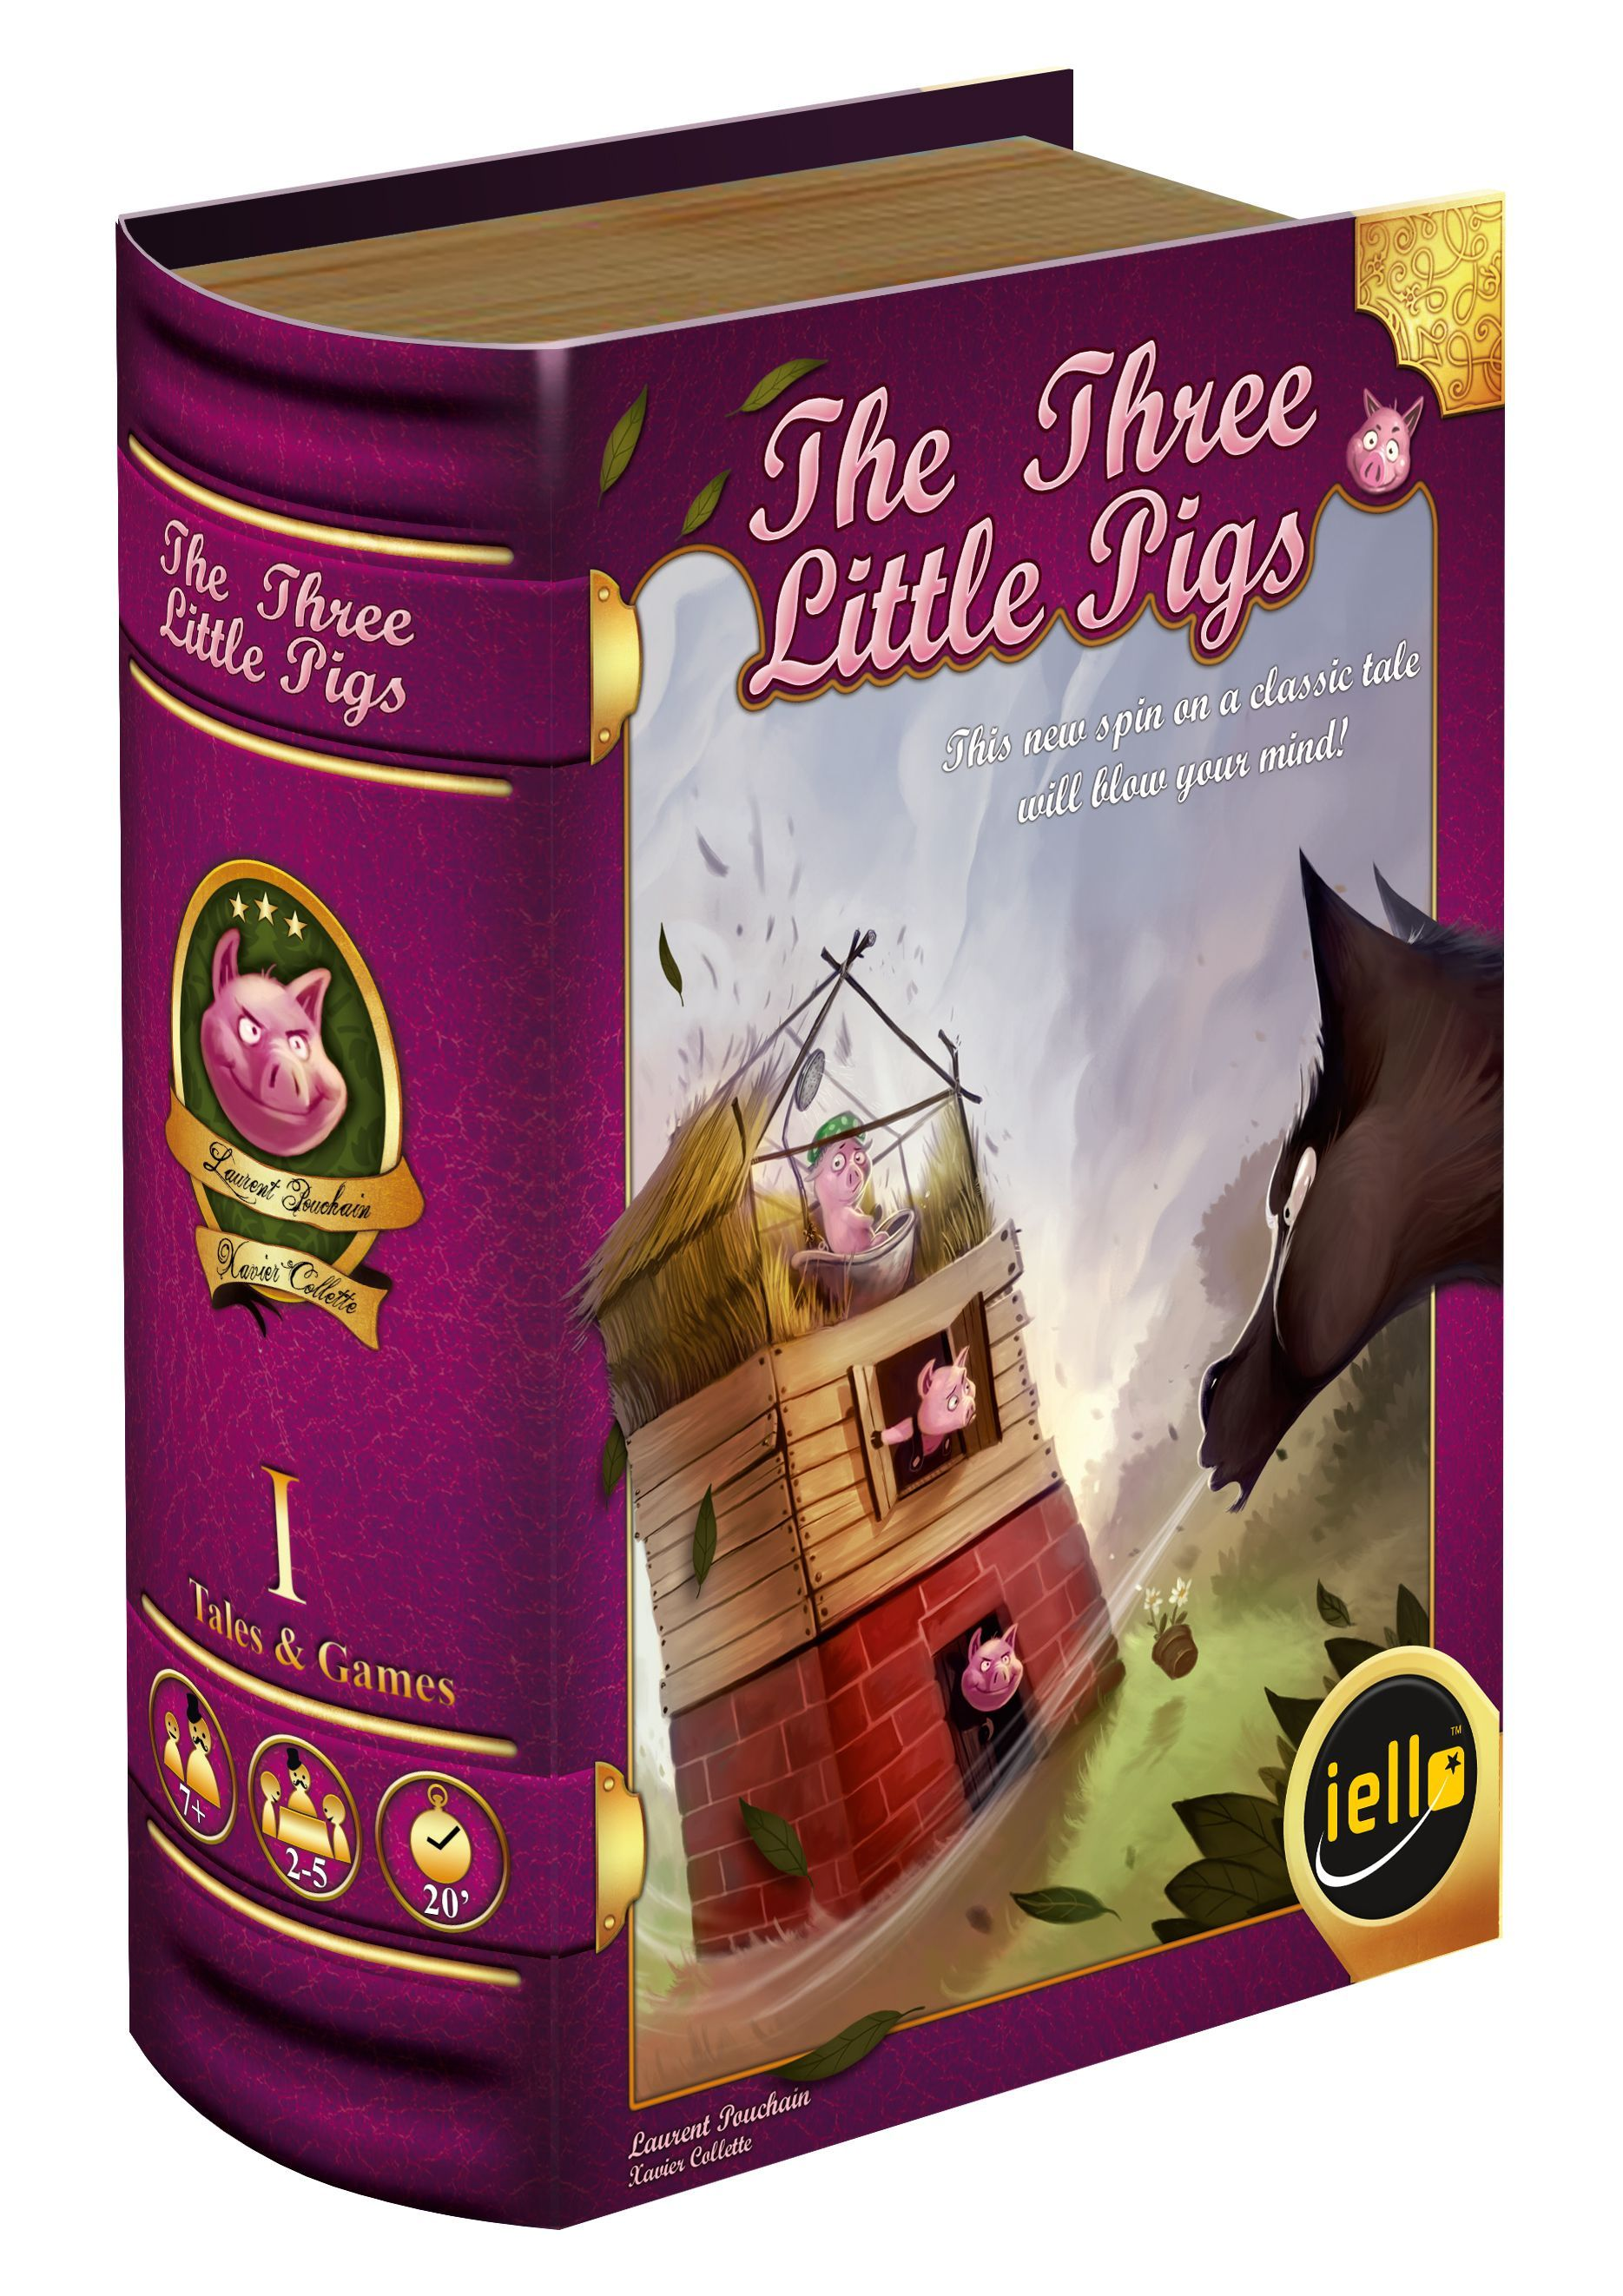 Main image for Tales & Games: The Three Little Pigs board game